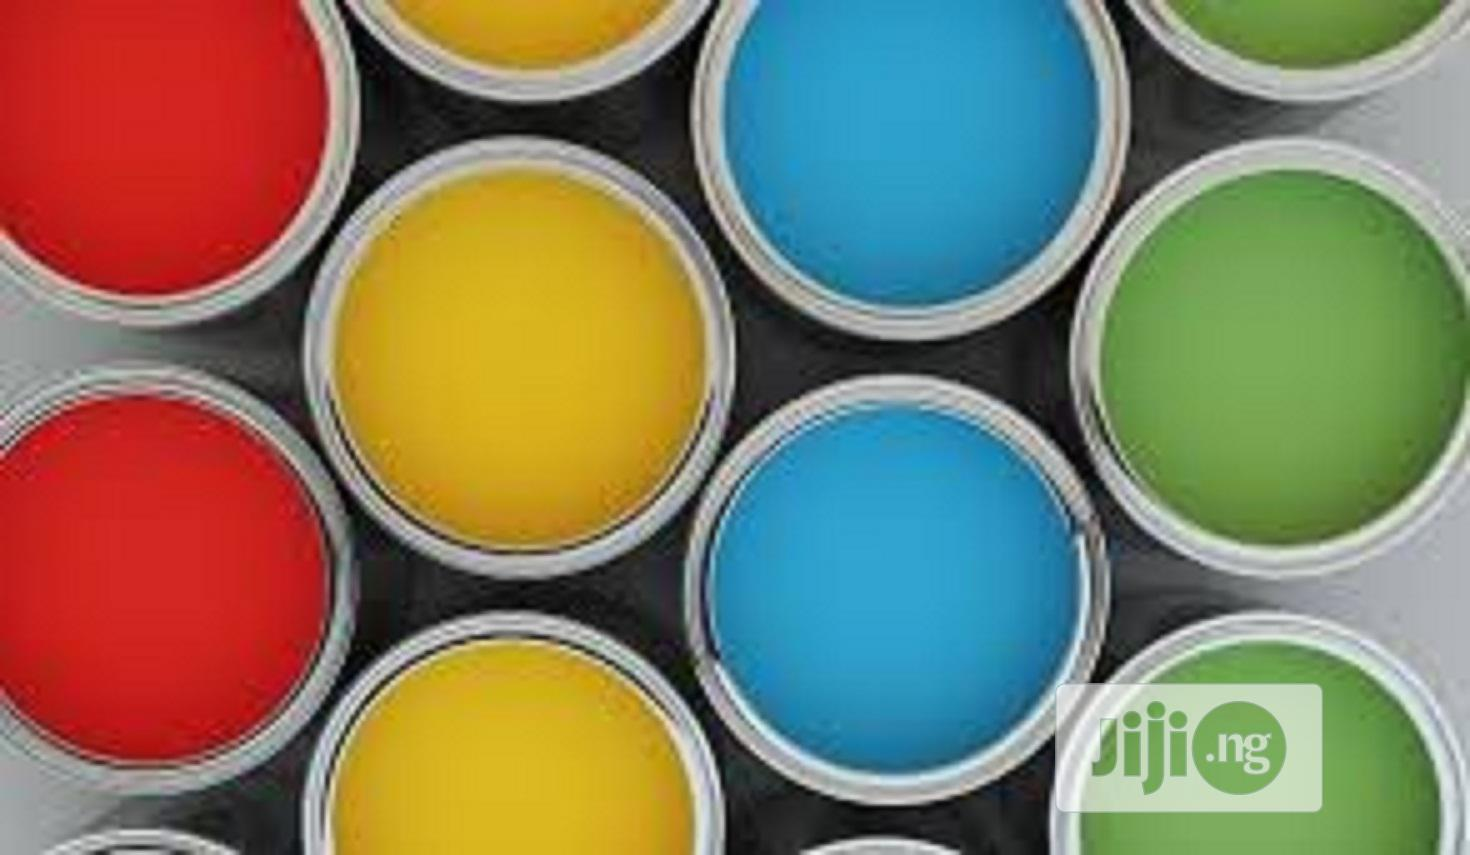 A Polyurethane Paint (PU Coating) Is A Hard-wearing, Highly-resistant